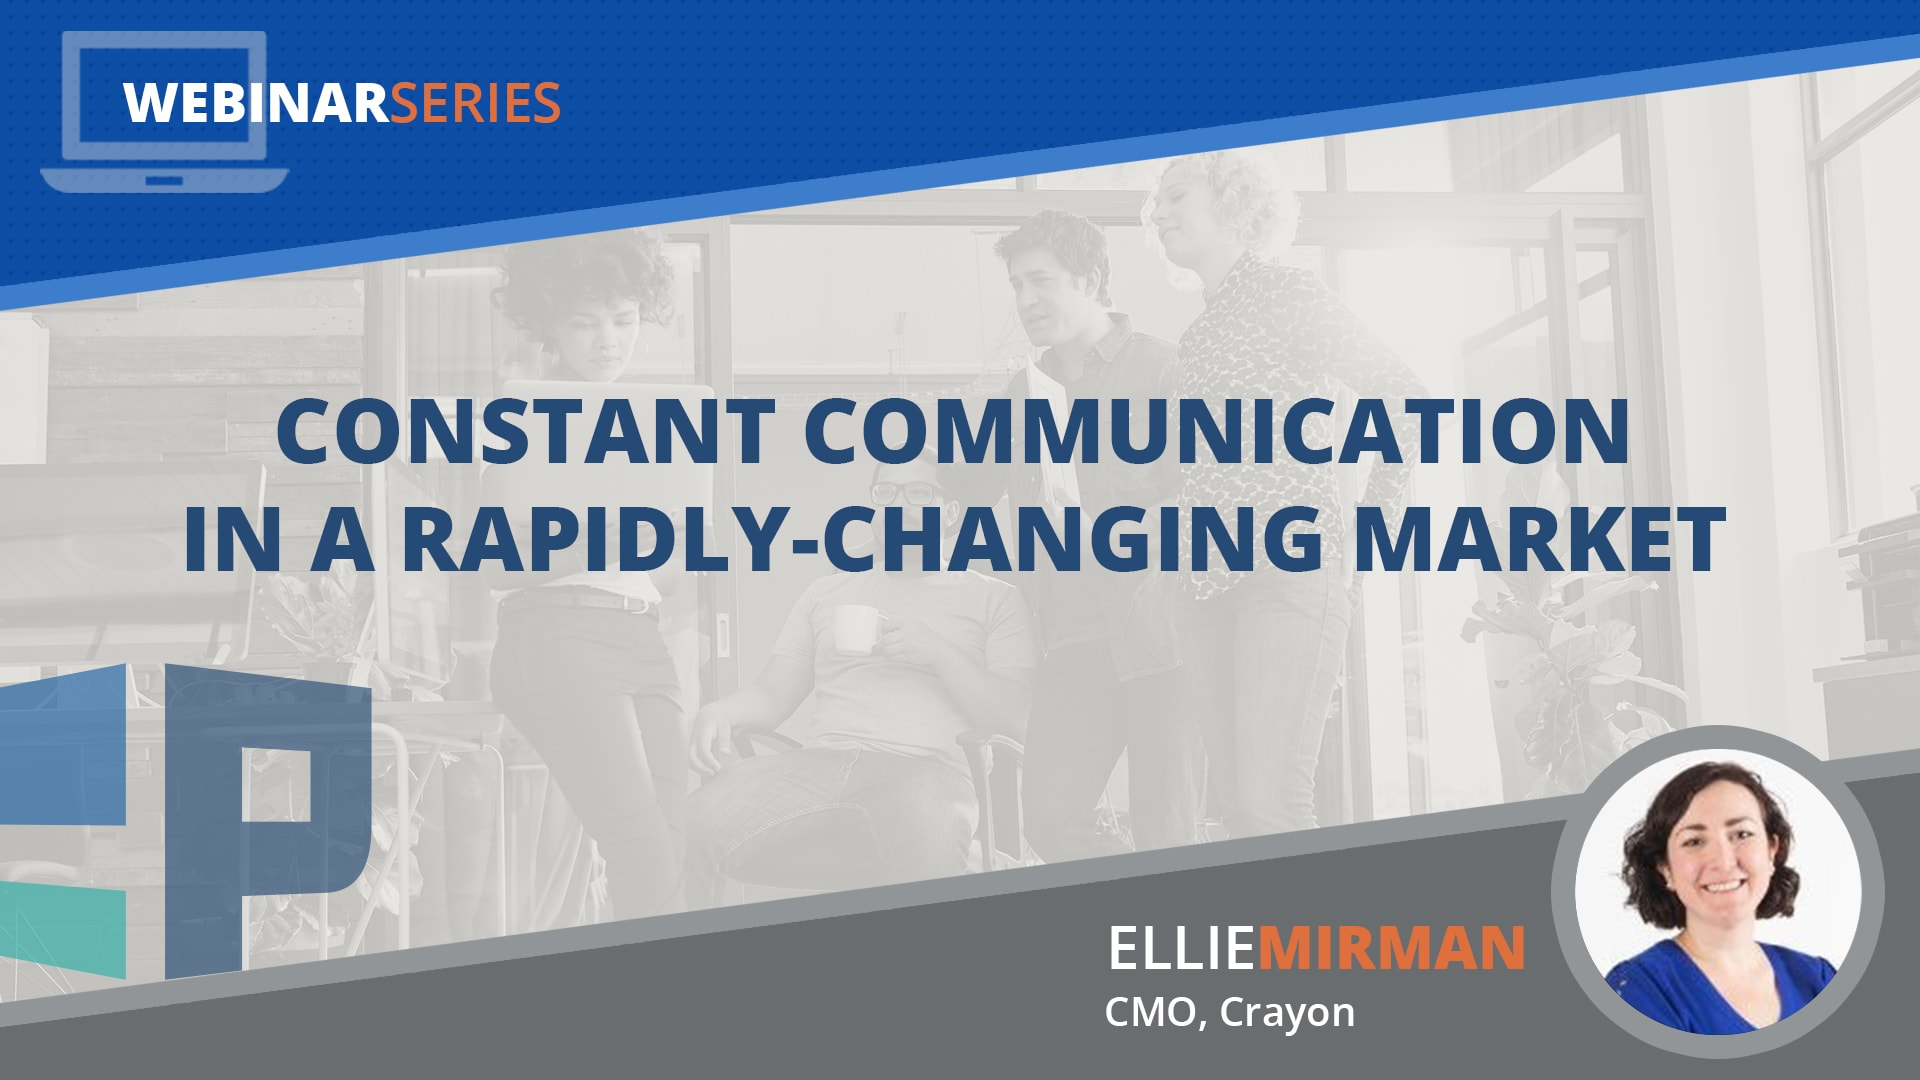 Constant Communication in a Rapidly-Changing Market